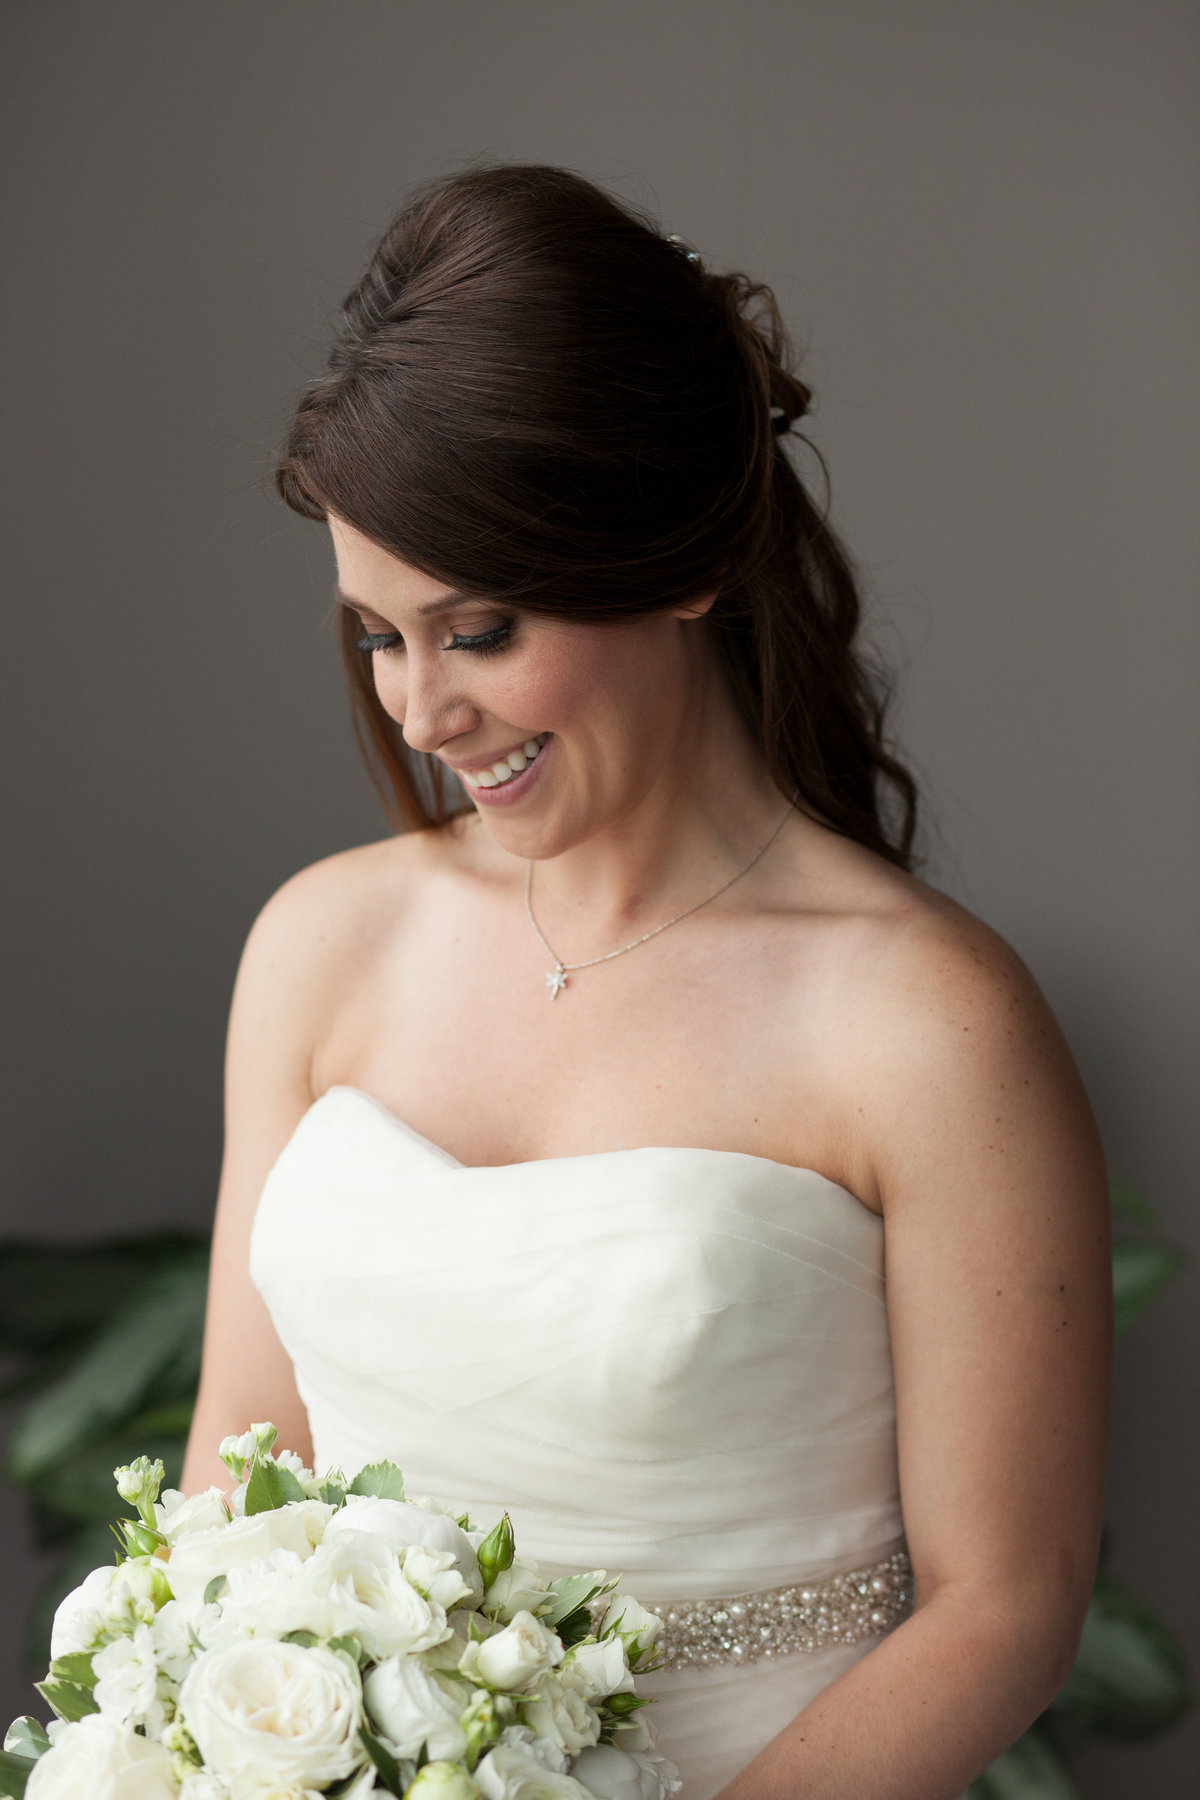 Nicole and Paul Wedding - Natalie Probst Photography 062